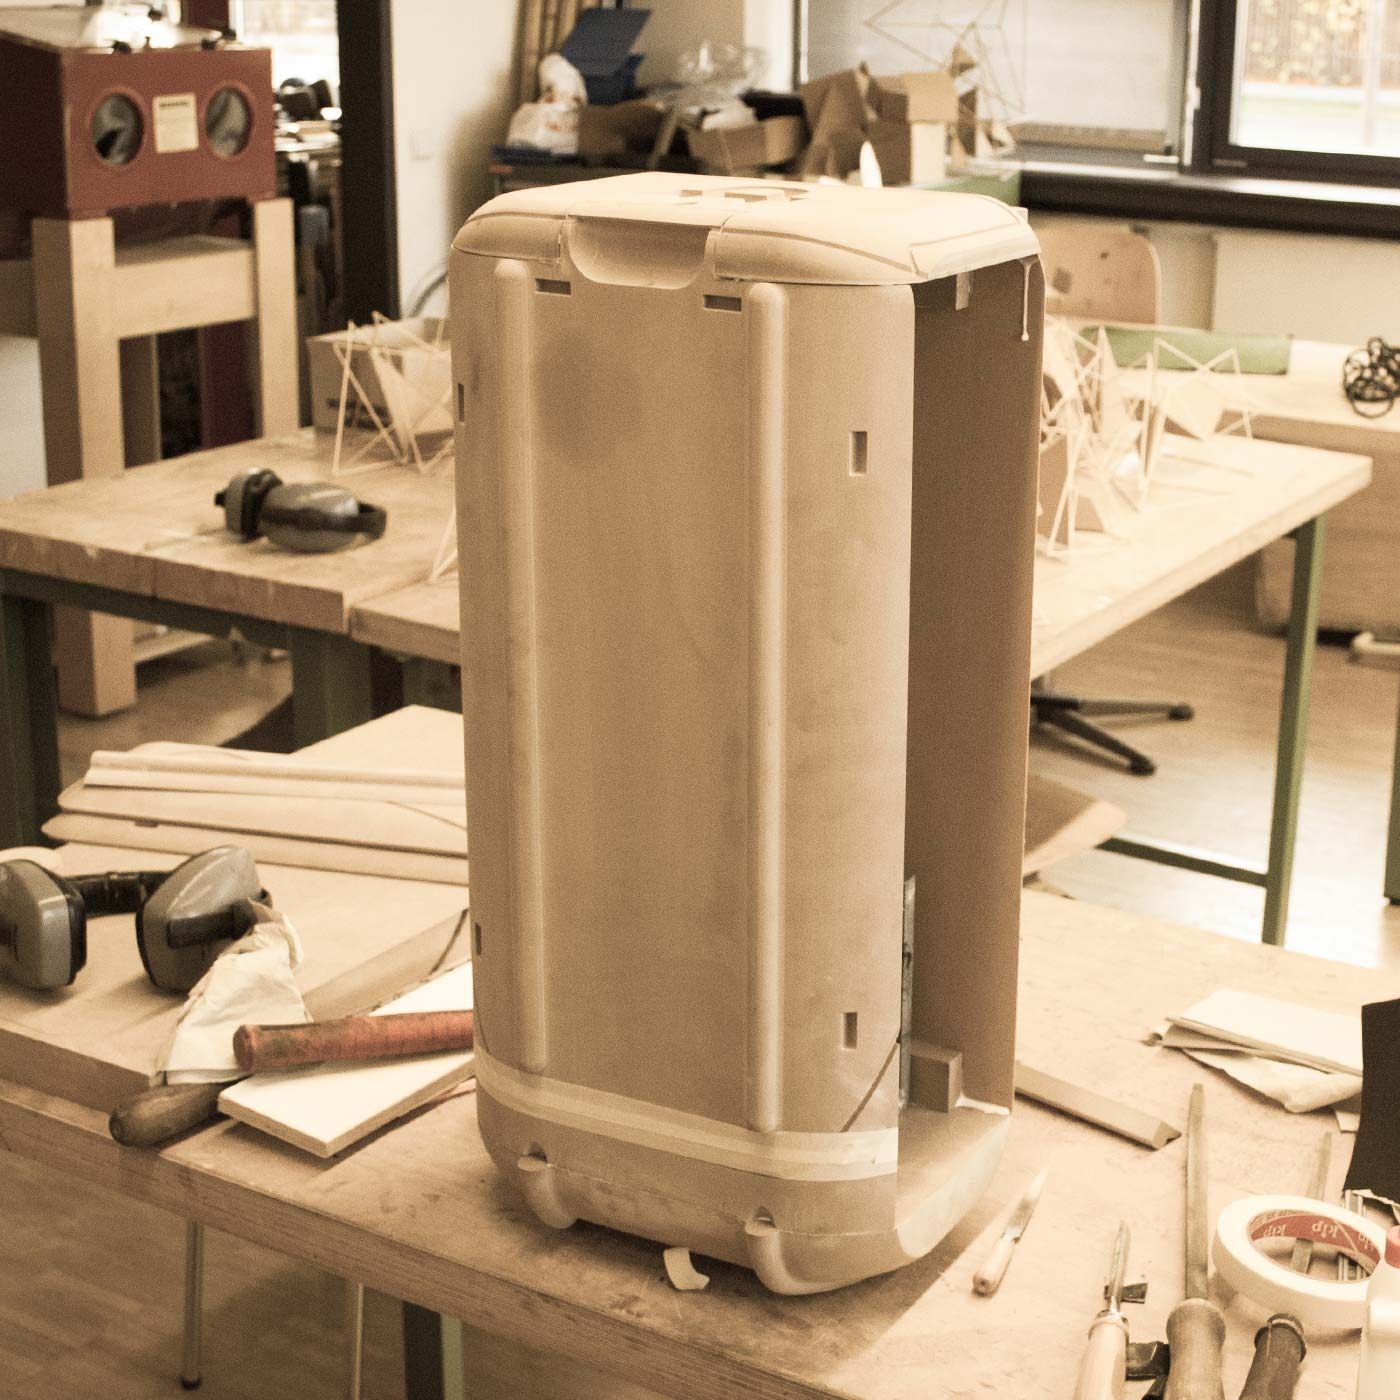 Assembly of milled parts for the Stadtkoffer mockup by WACH designstudio